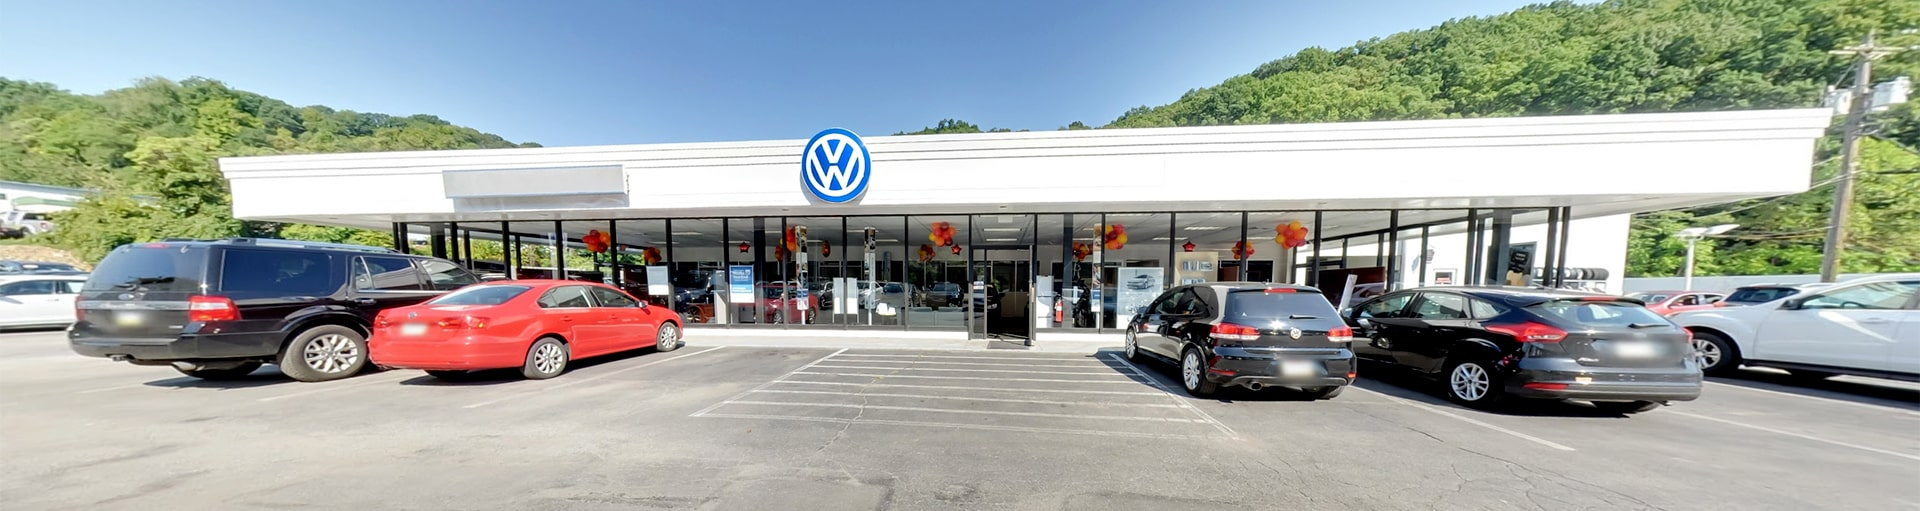 Volkswagen of Moon Township Battery Replacement